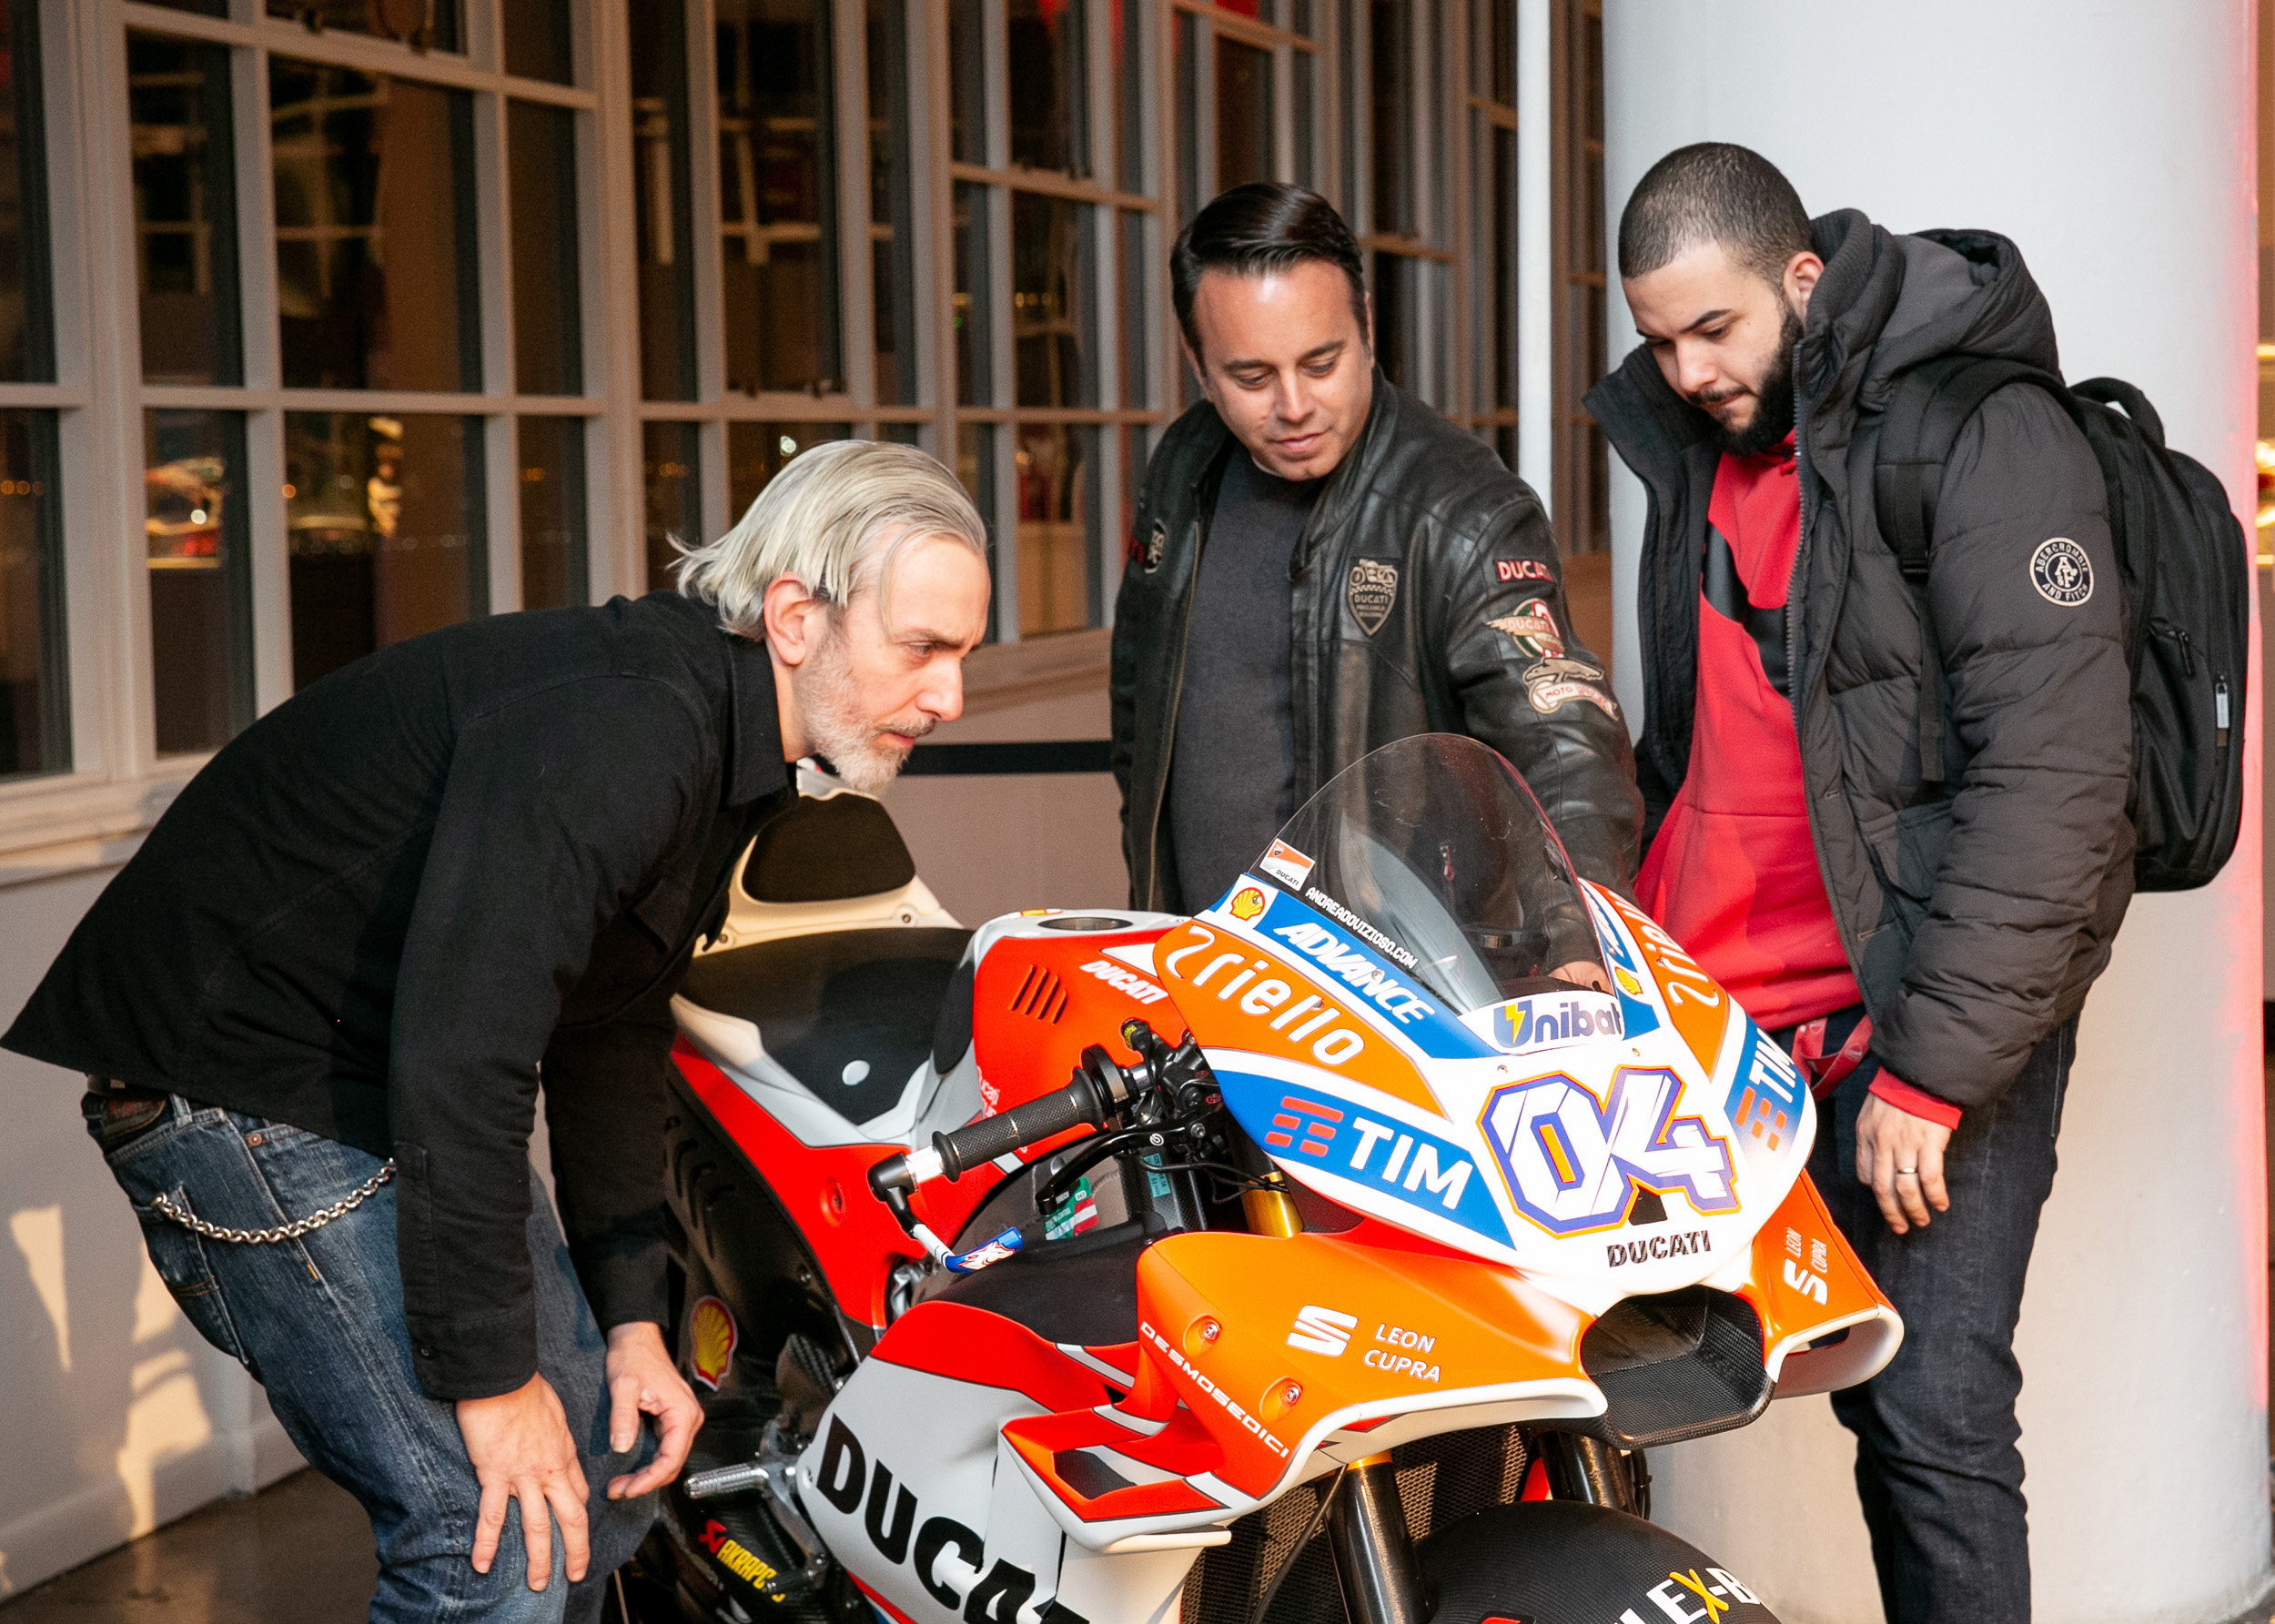 191210 Ducati North America Raises Funds for Carlin Dunne Foundation With Successful Charity Auction [5]